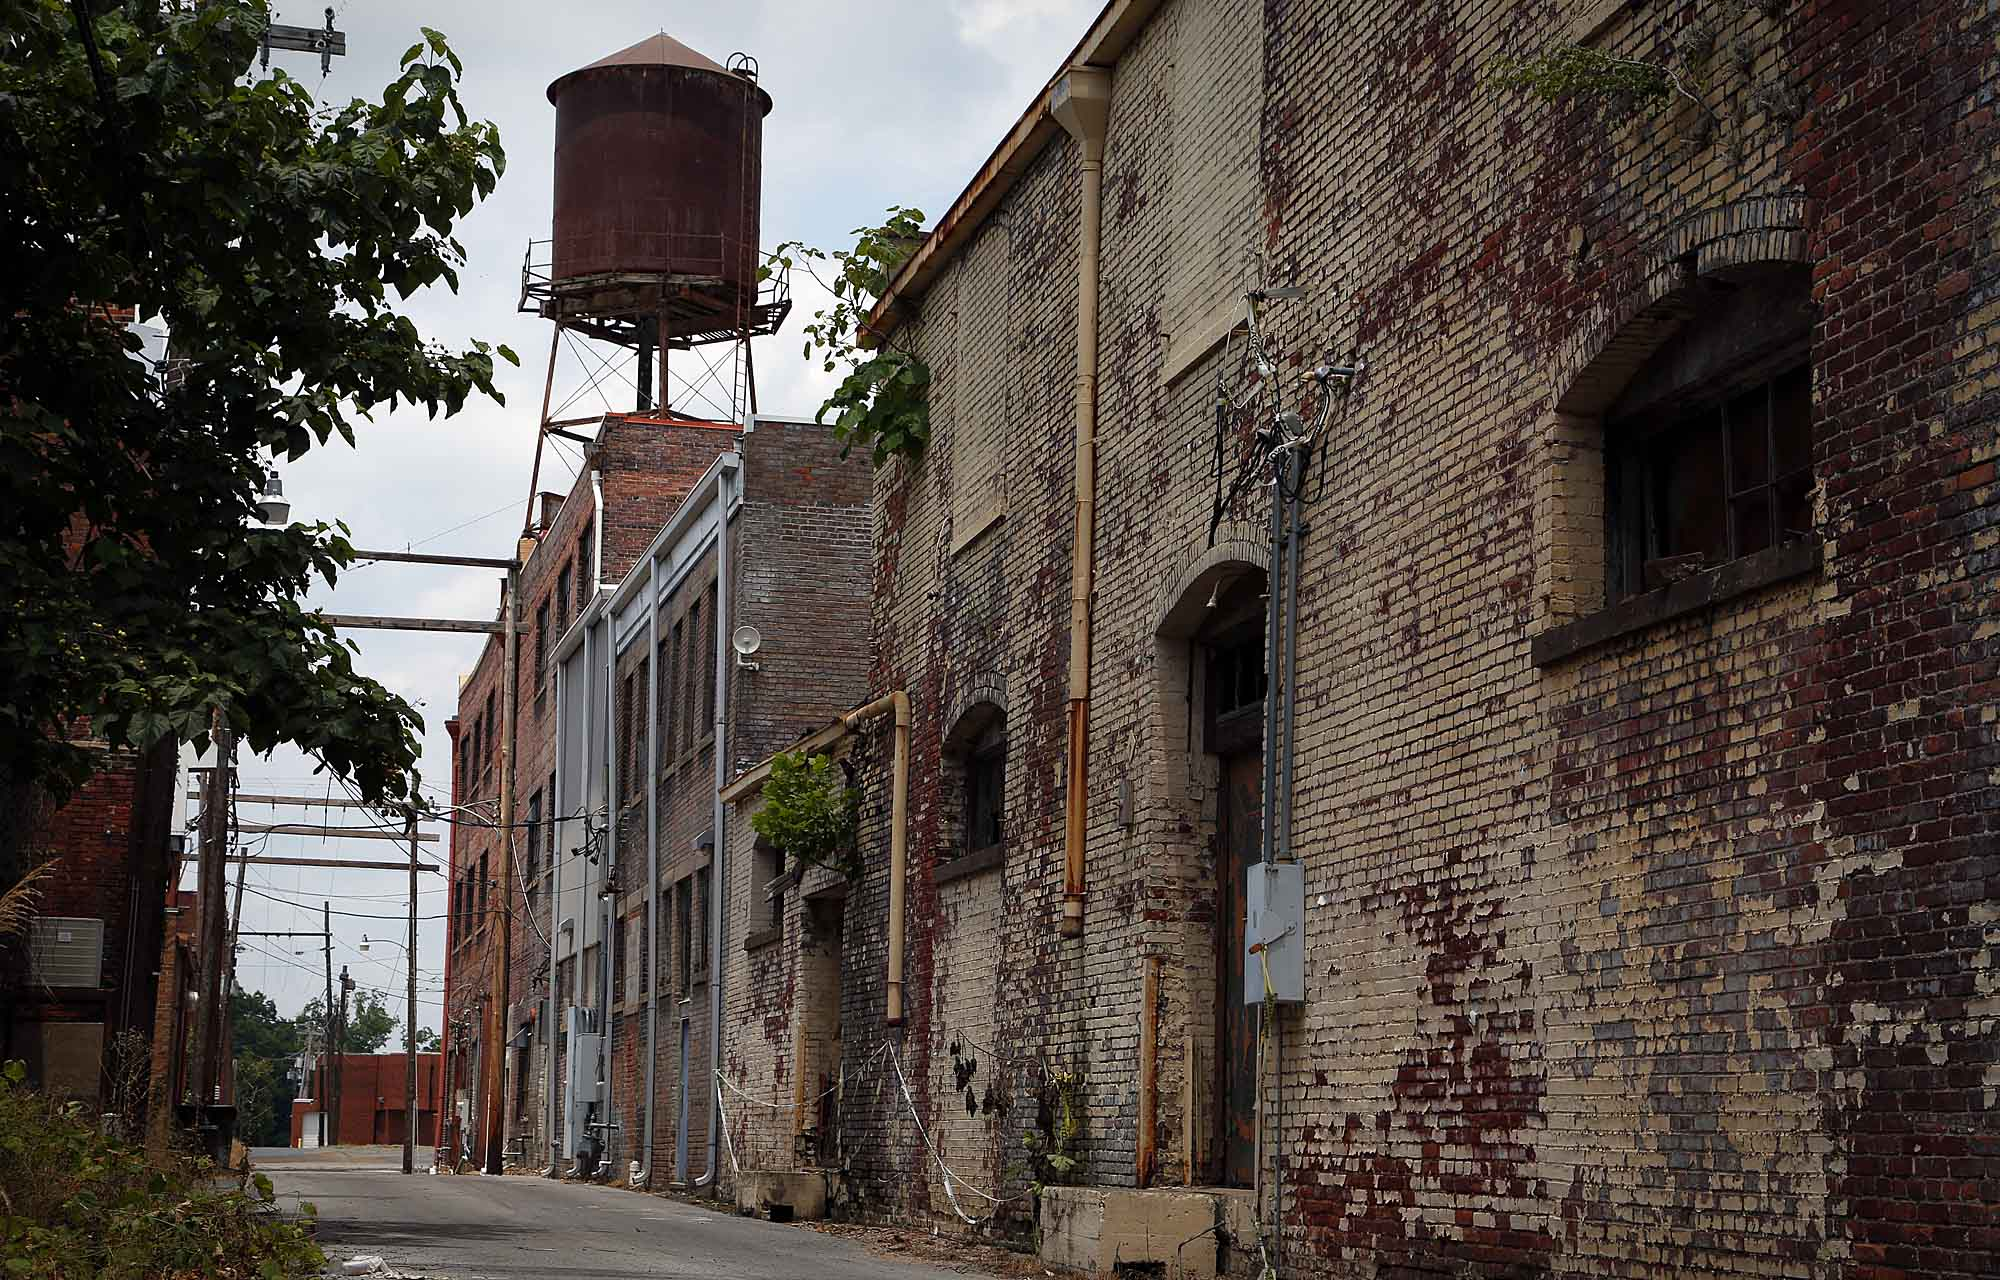 Alley in Helena, Arkansas